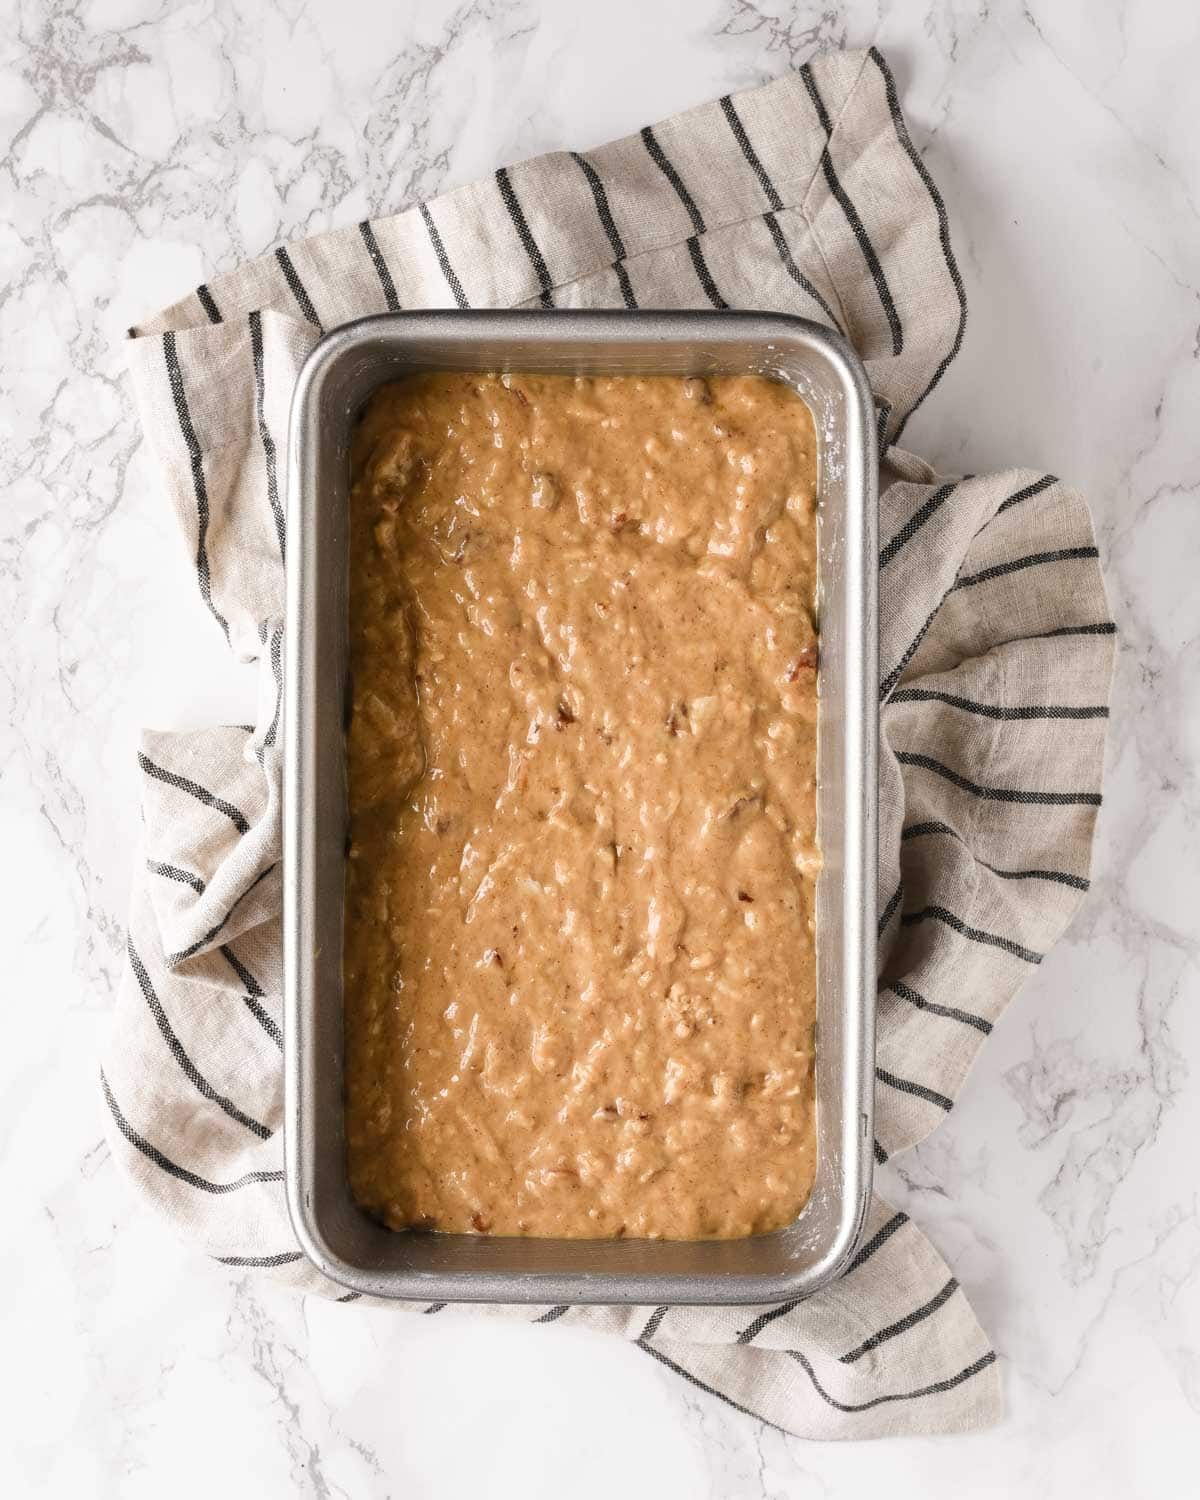 Banana Bread unbaked in pan